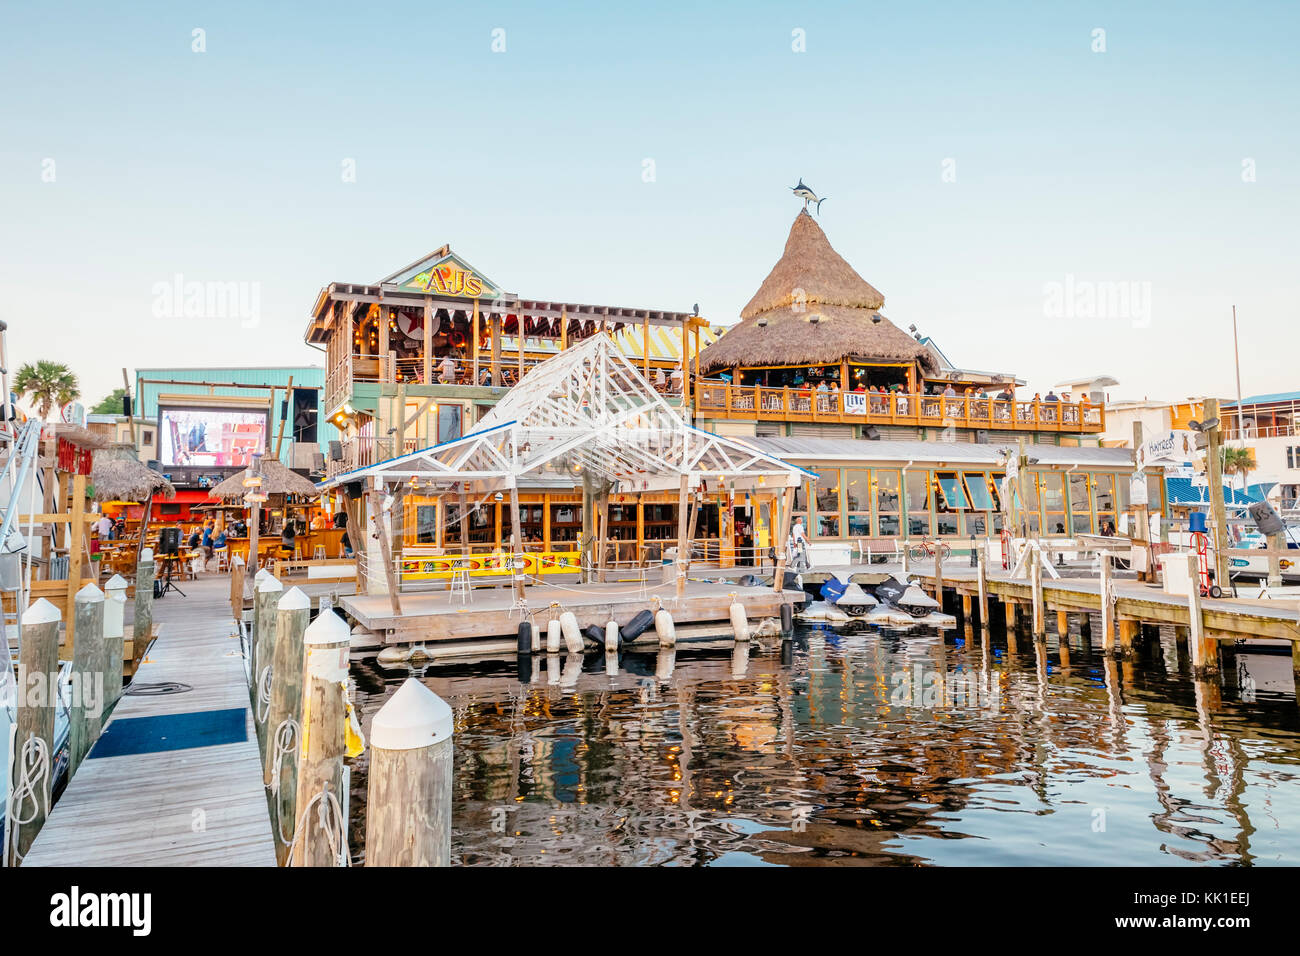 AJ's Seafood and Oyster Bar, view from the boat docks at Harbor Walk Marina, Destin Florida, USA. - Stock Image